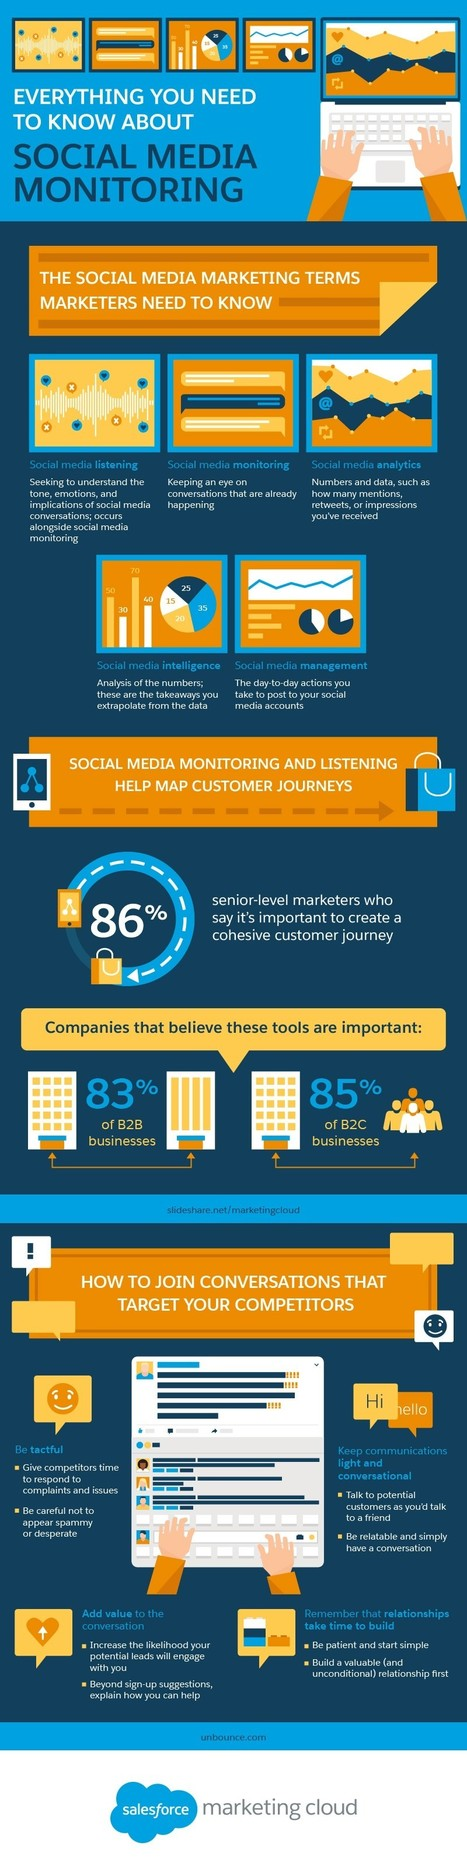 Everything You Need to Know about Social Media Monitoring #Infographic | Social web 2.0 | Scoop.it